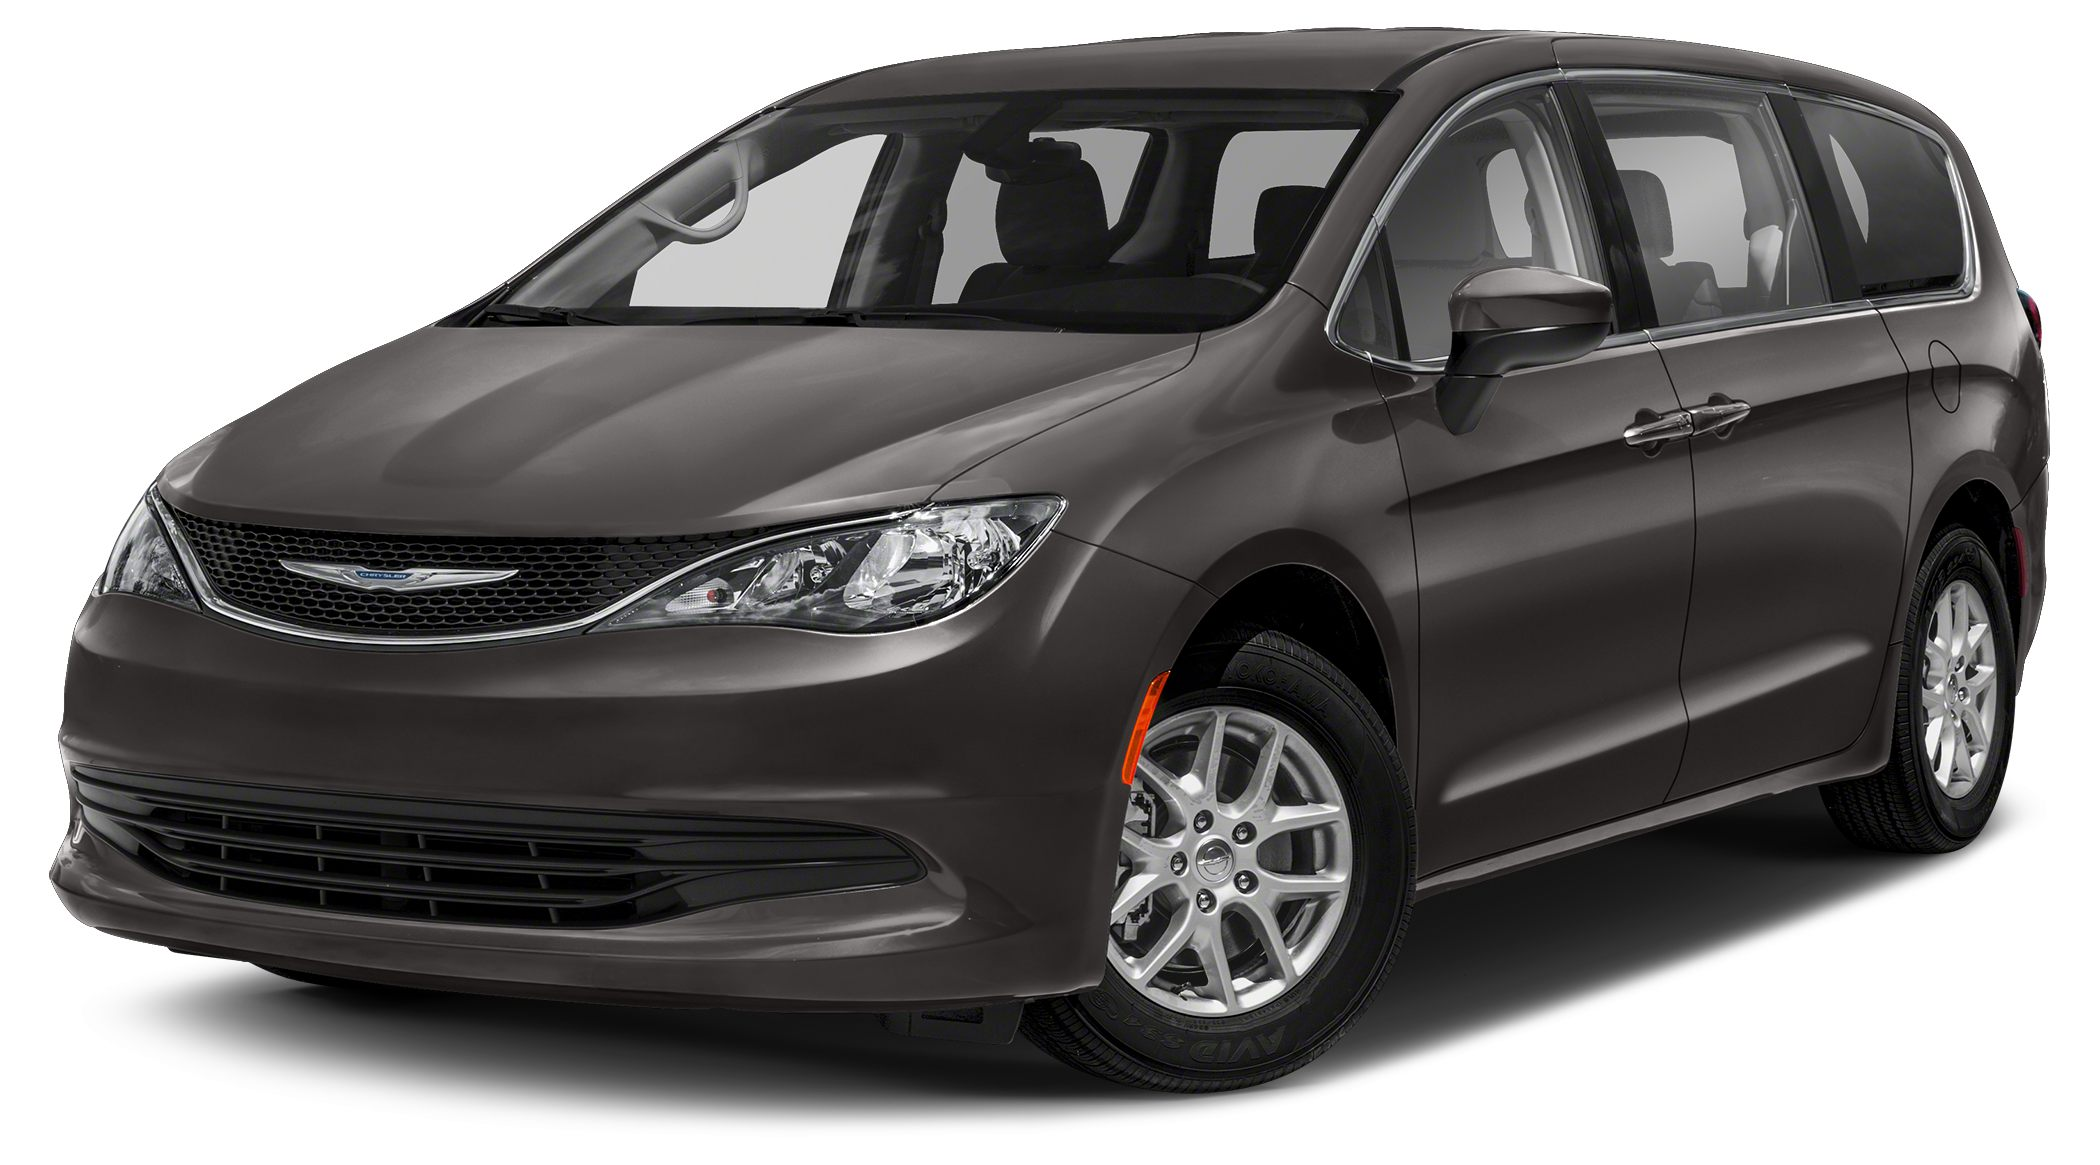 2018 Chrysler Pacifica L SPECIAL ONLINE PRICE INCLUDES 1000 IN REBATES THAT ALL CUSTOMERS QUALIF